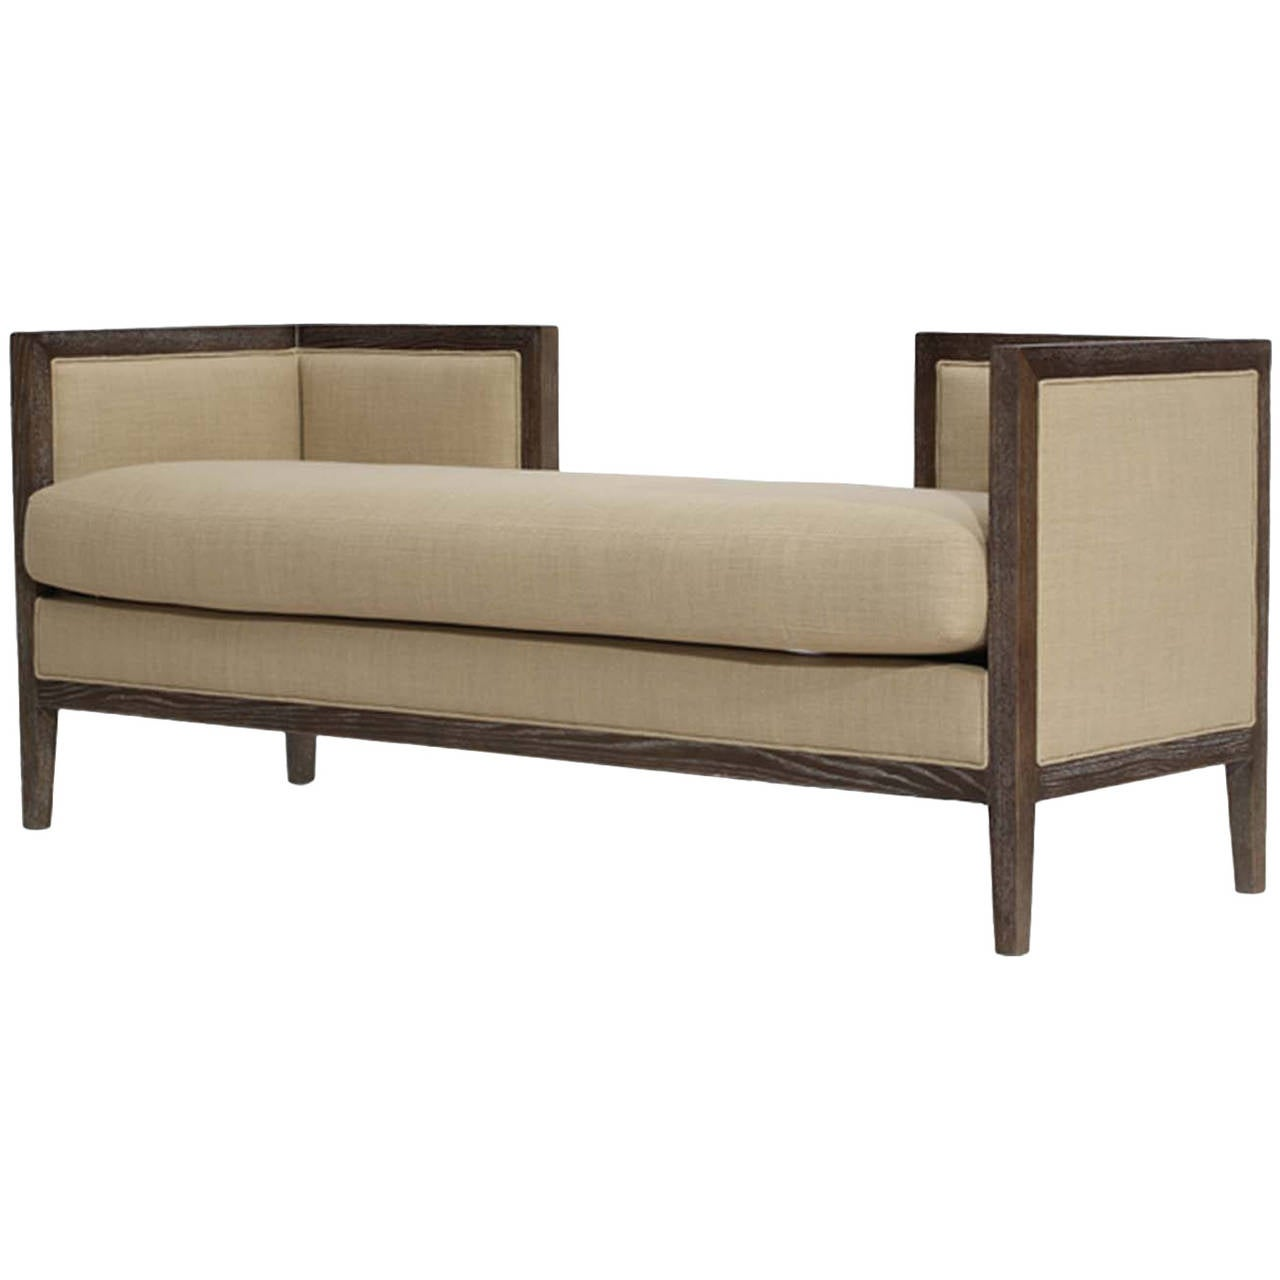 Open back settee at 1stdibs for Settee without back